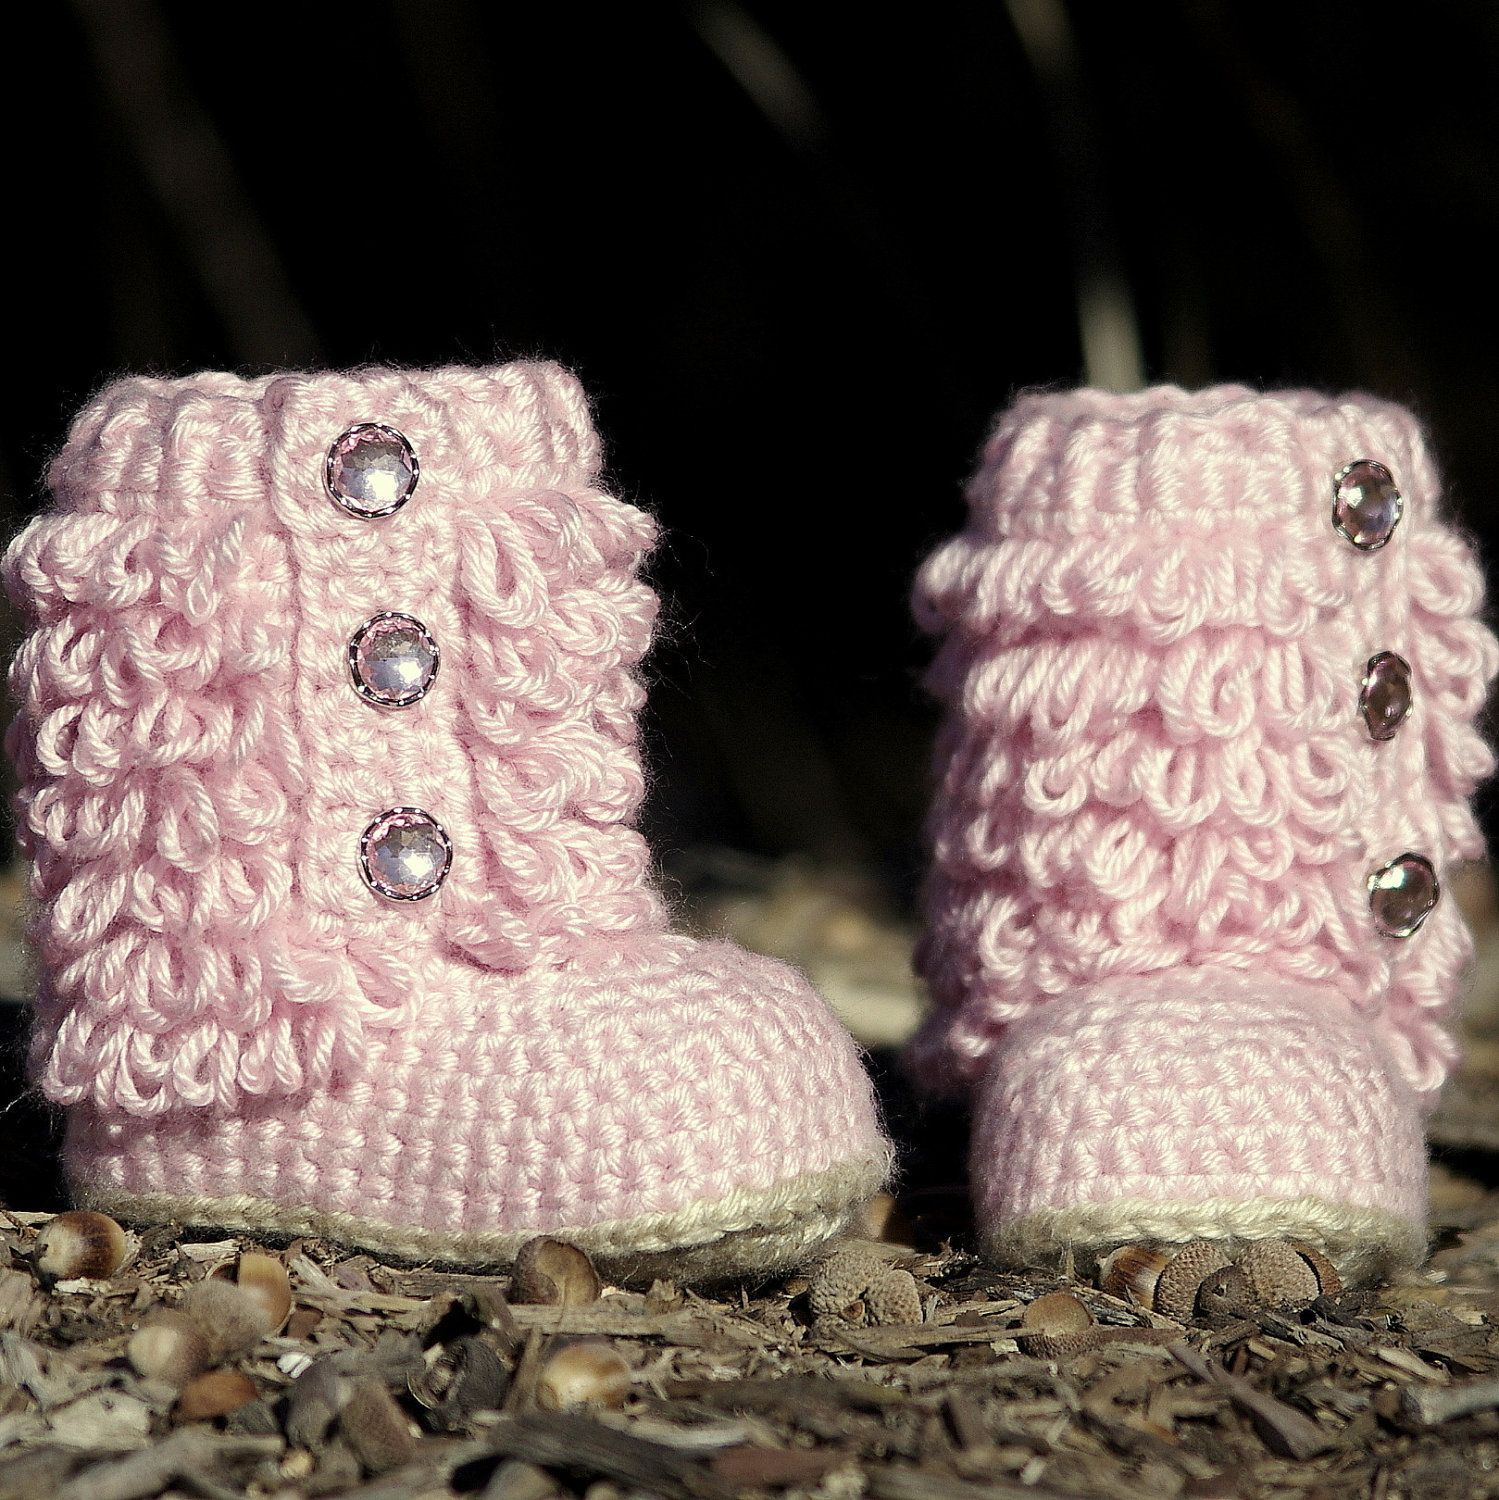 Crochet pattern little diva boot toddler sizes 4 9 pattern crochet pattern little diva boot toddler sizes 4 9 pattern number 201 instant download kc550 bankloansurffo Choice Image